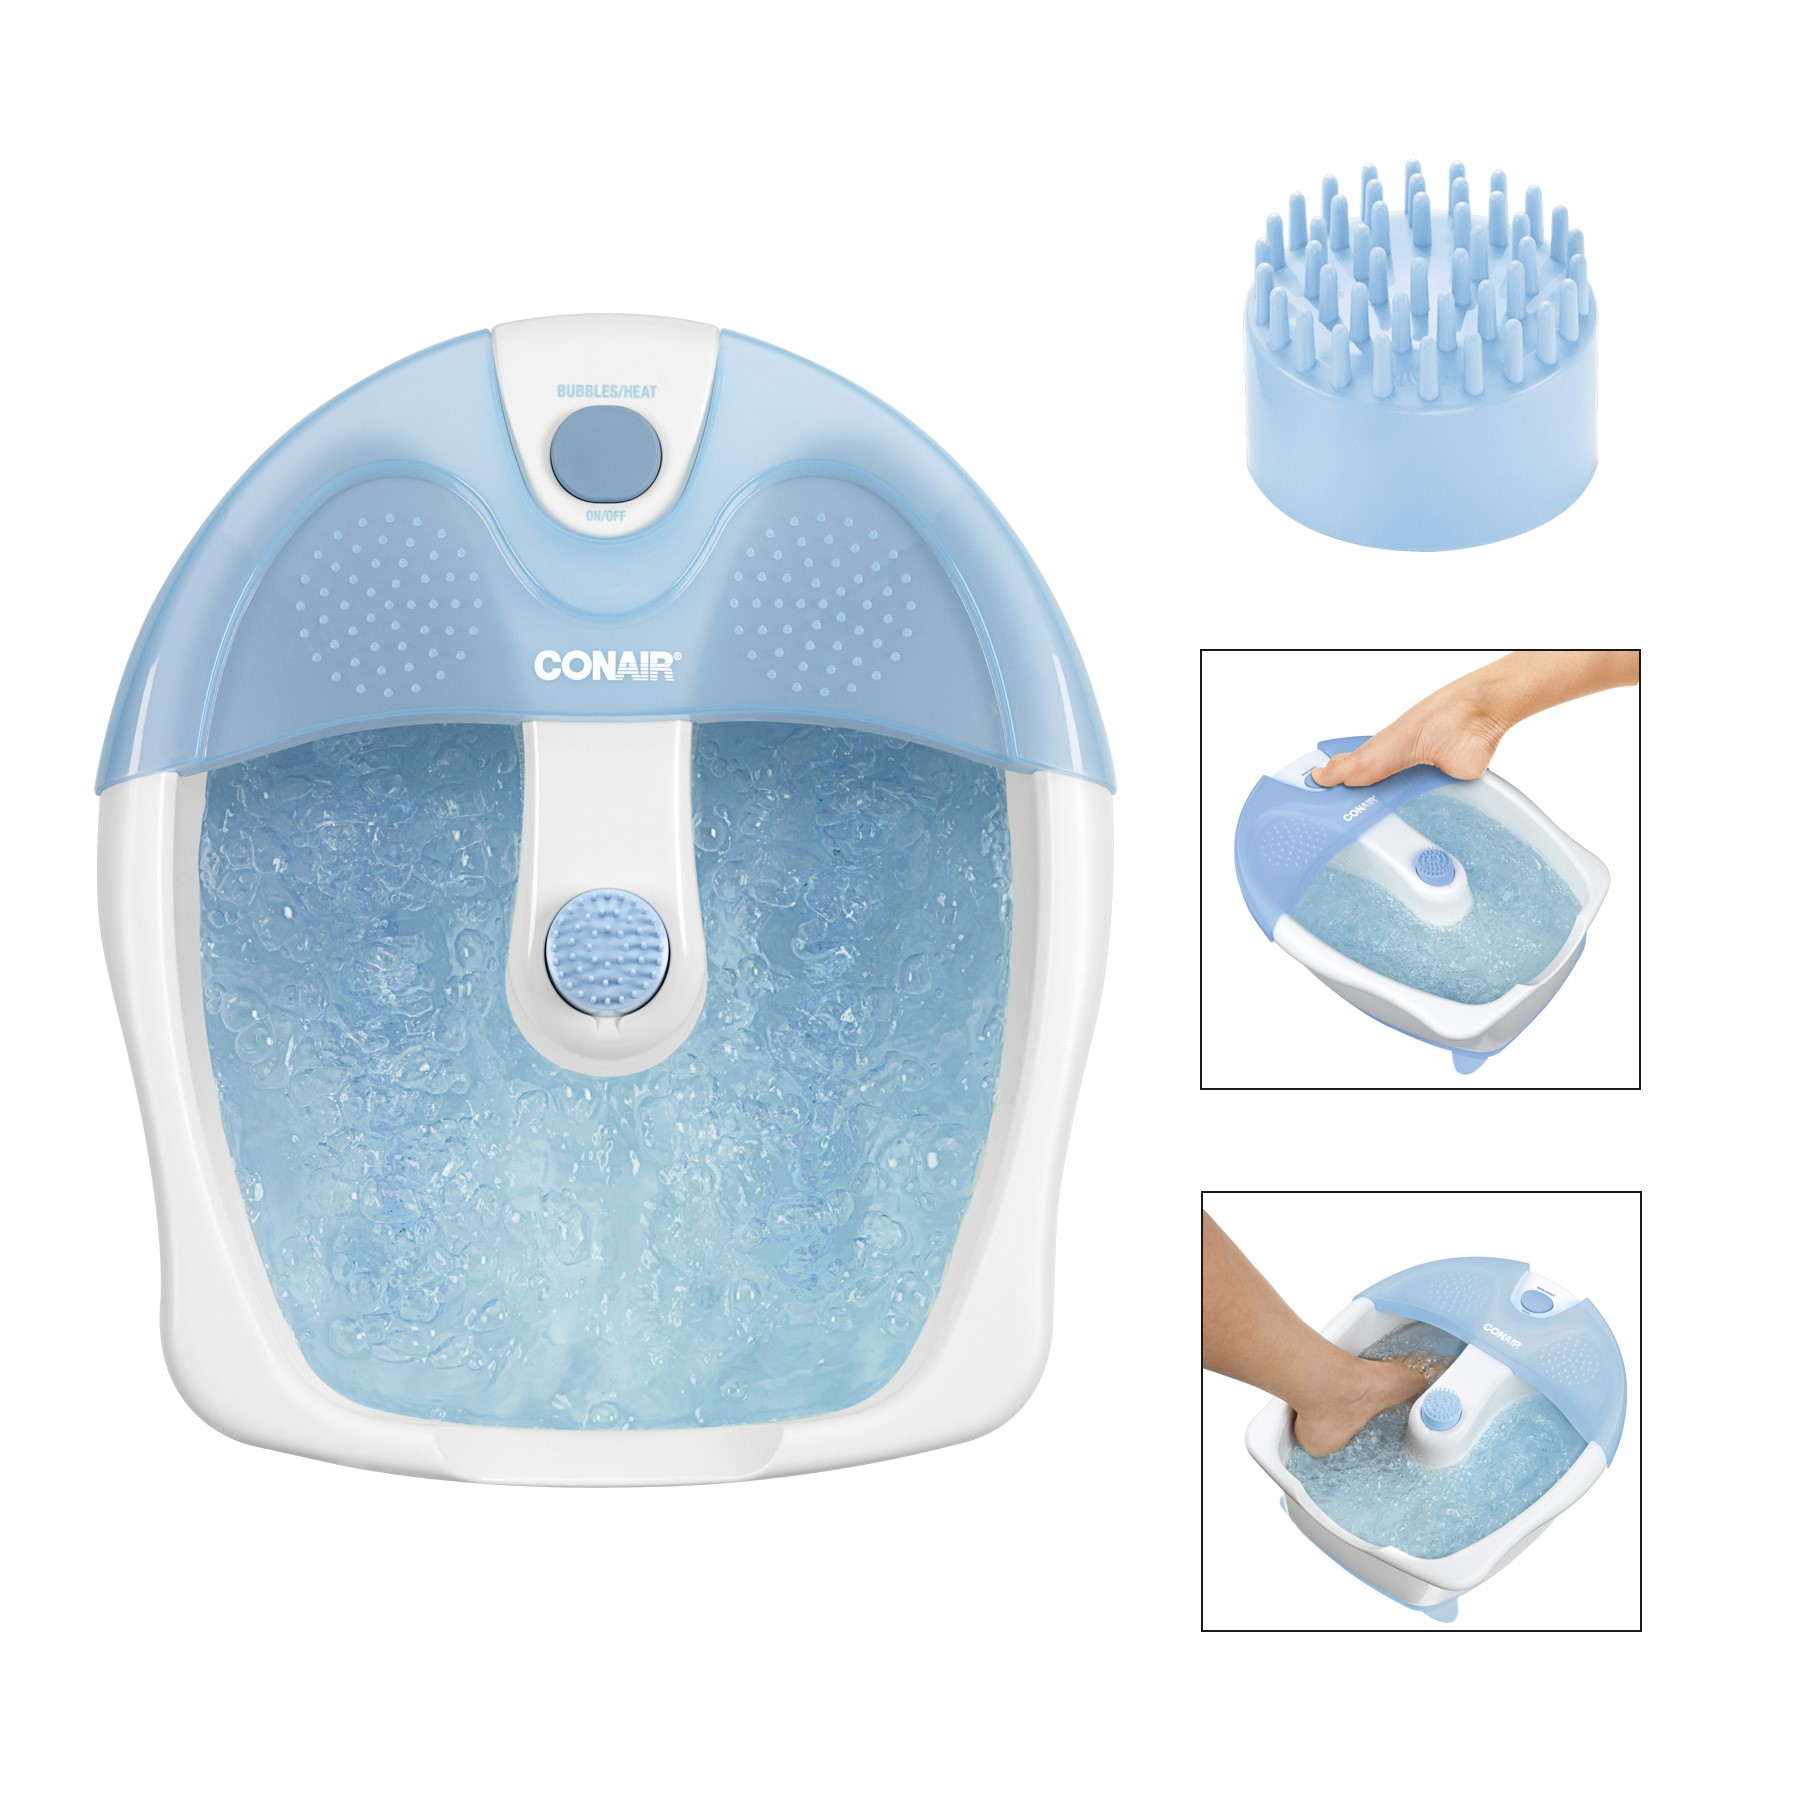 Conair Relaxing Footbath with Bubbles and Heat, Model FB5X - Walmart.com